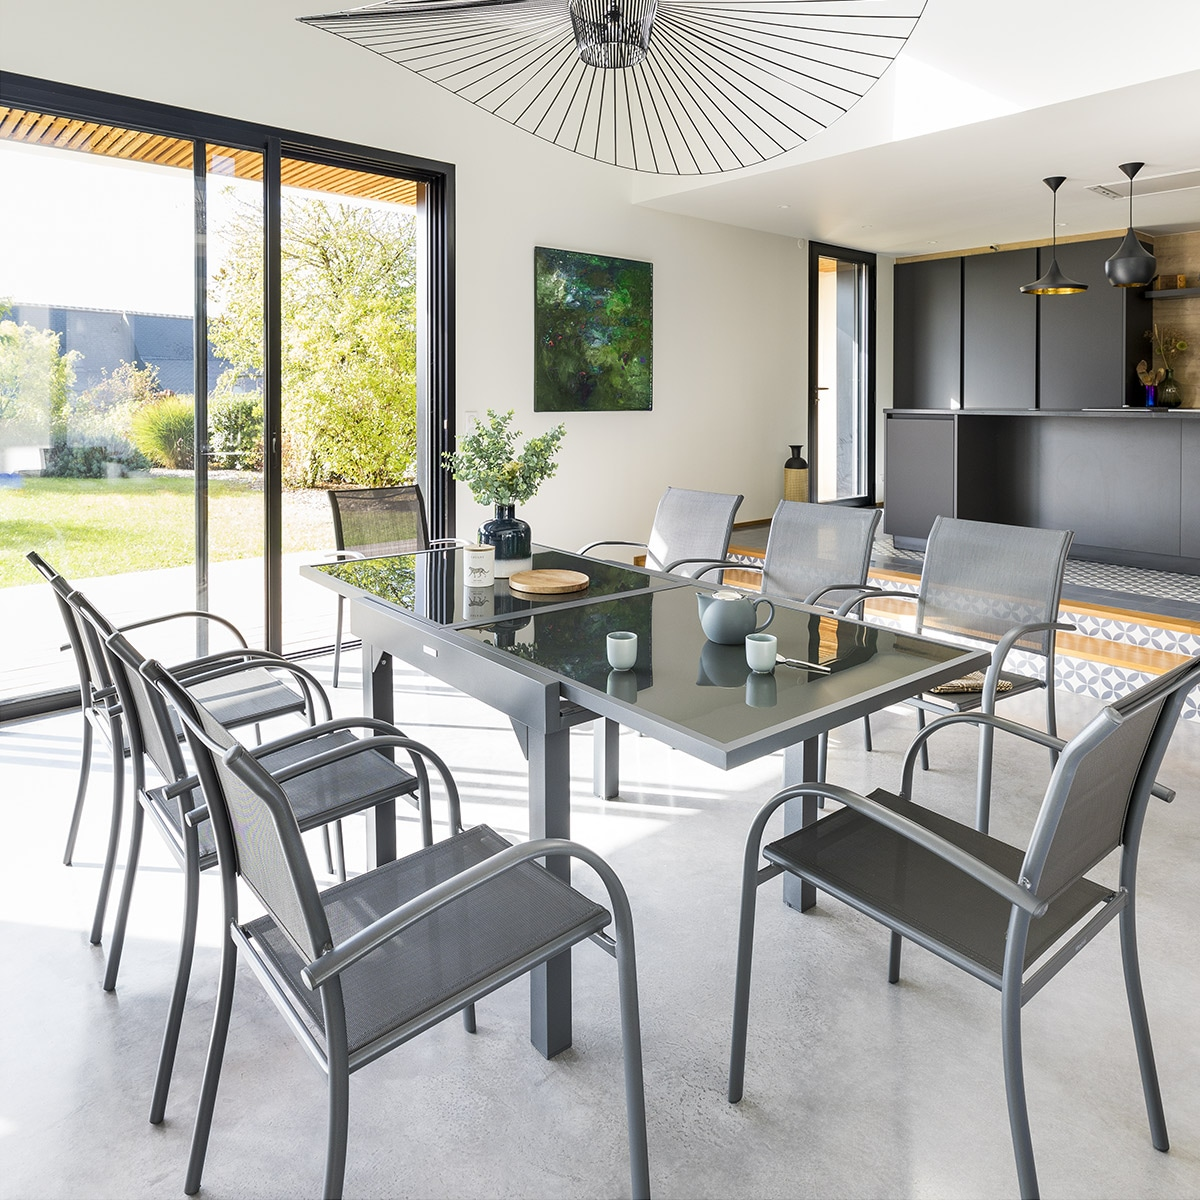 table de jardin extensible piazza anthracite graphite hesp ride 8 places. Black Bedroom Furniture Sets. Home Design Ideas